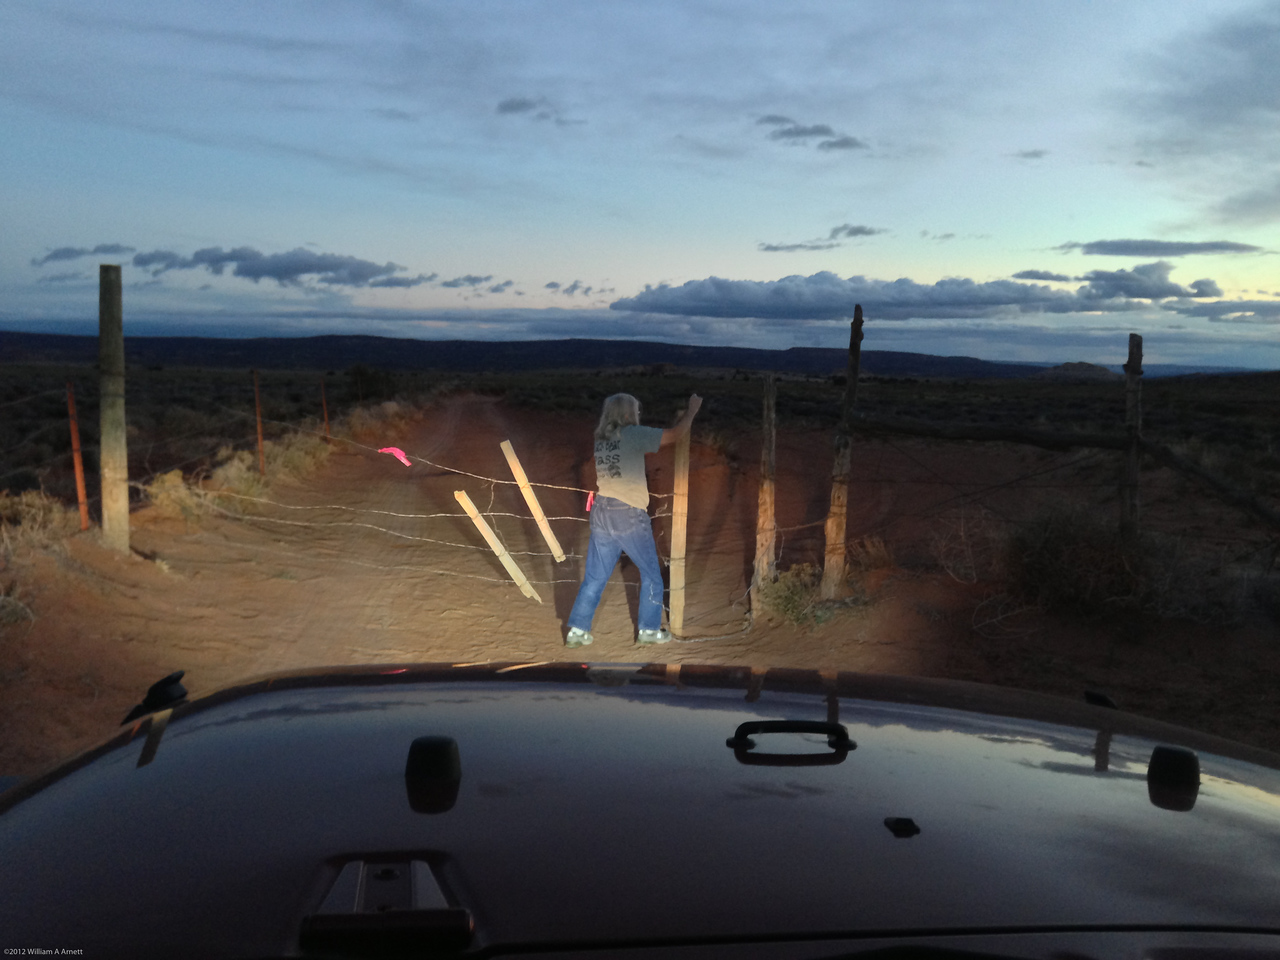 This gate was not on our maps.  Had we been unable to open it we didn't have enough gas to get back to civilization. There are wire cutters in my tool box but I didnt' want to have to use them.